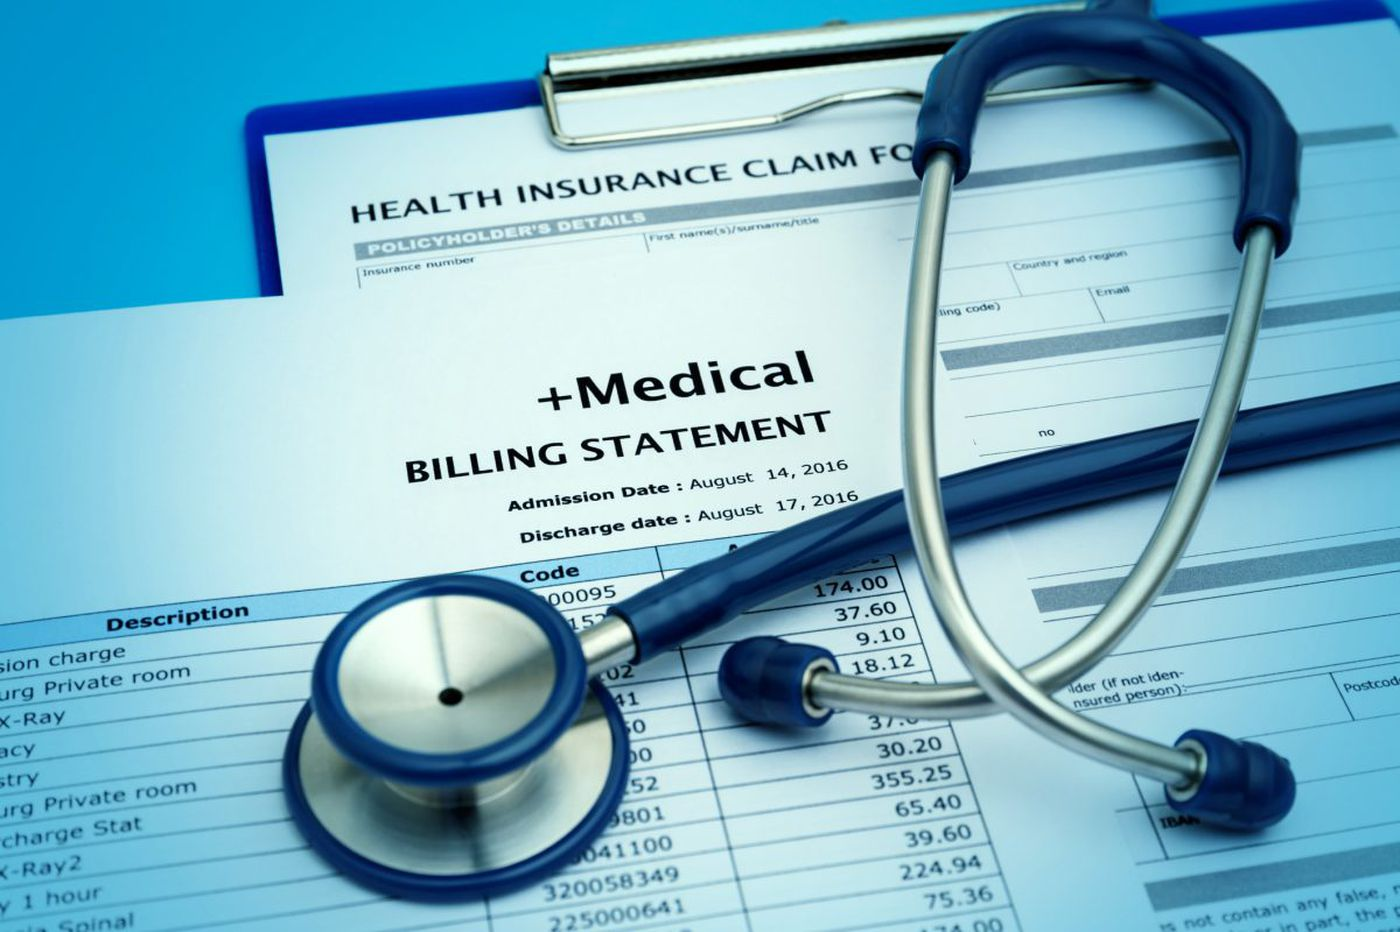 Opinion: Hospitals need more compassion in billing low-income patients